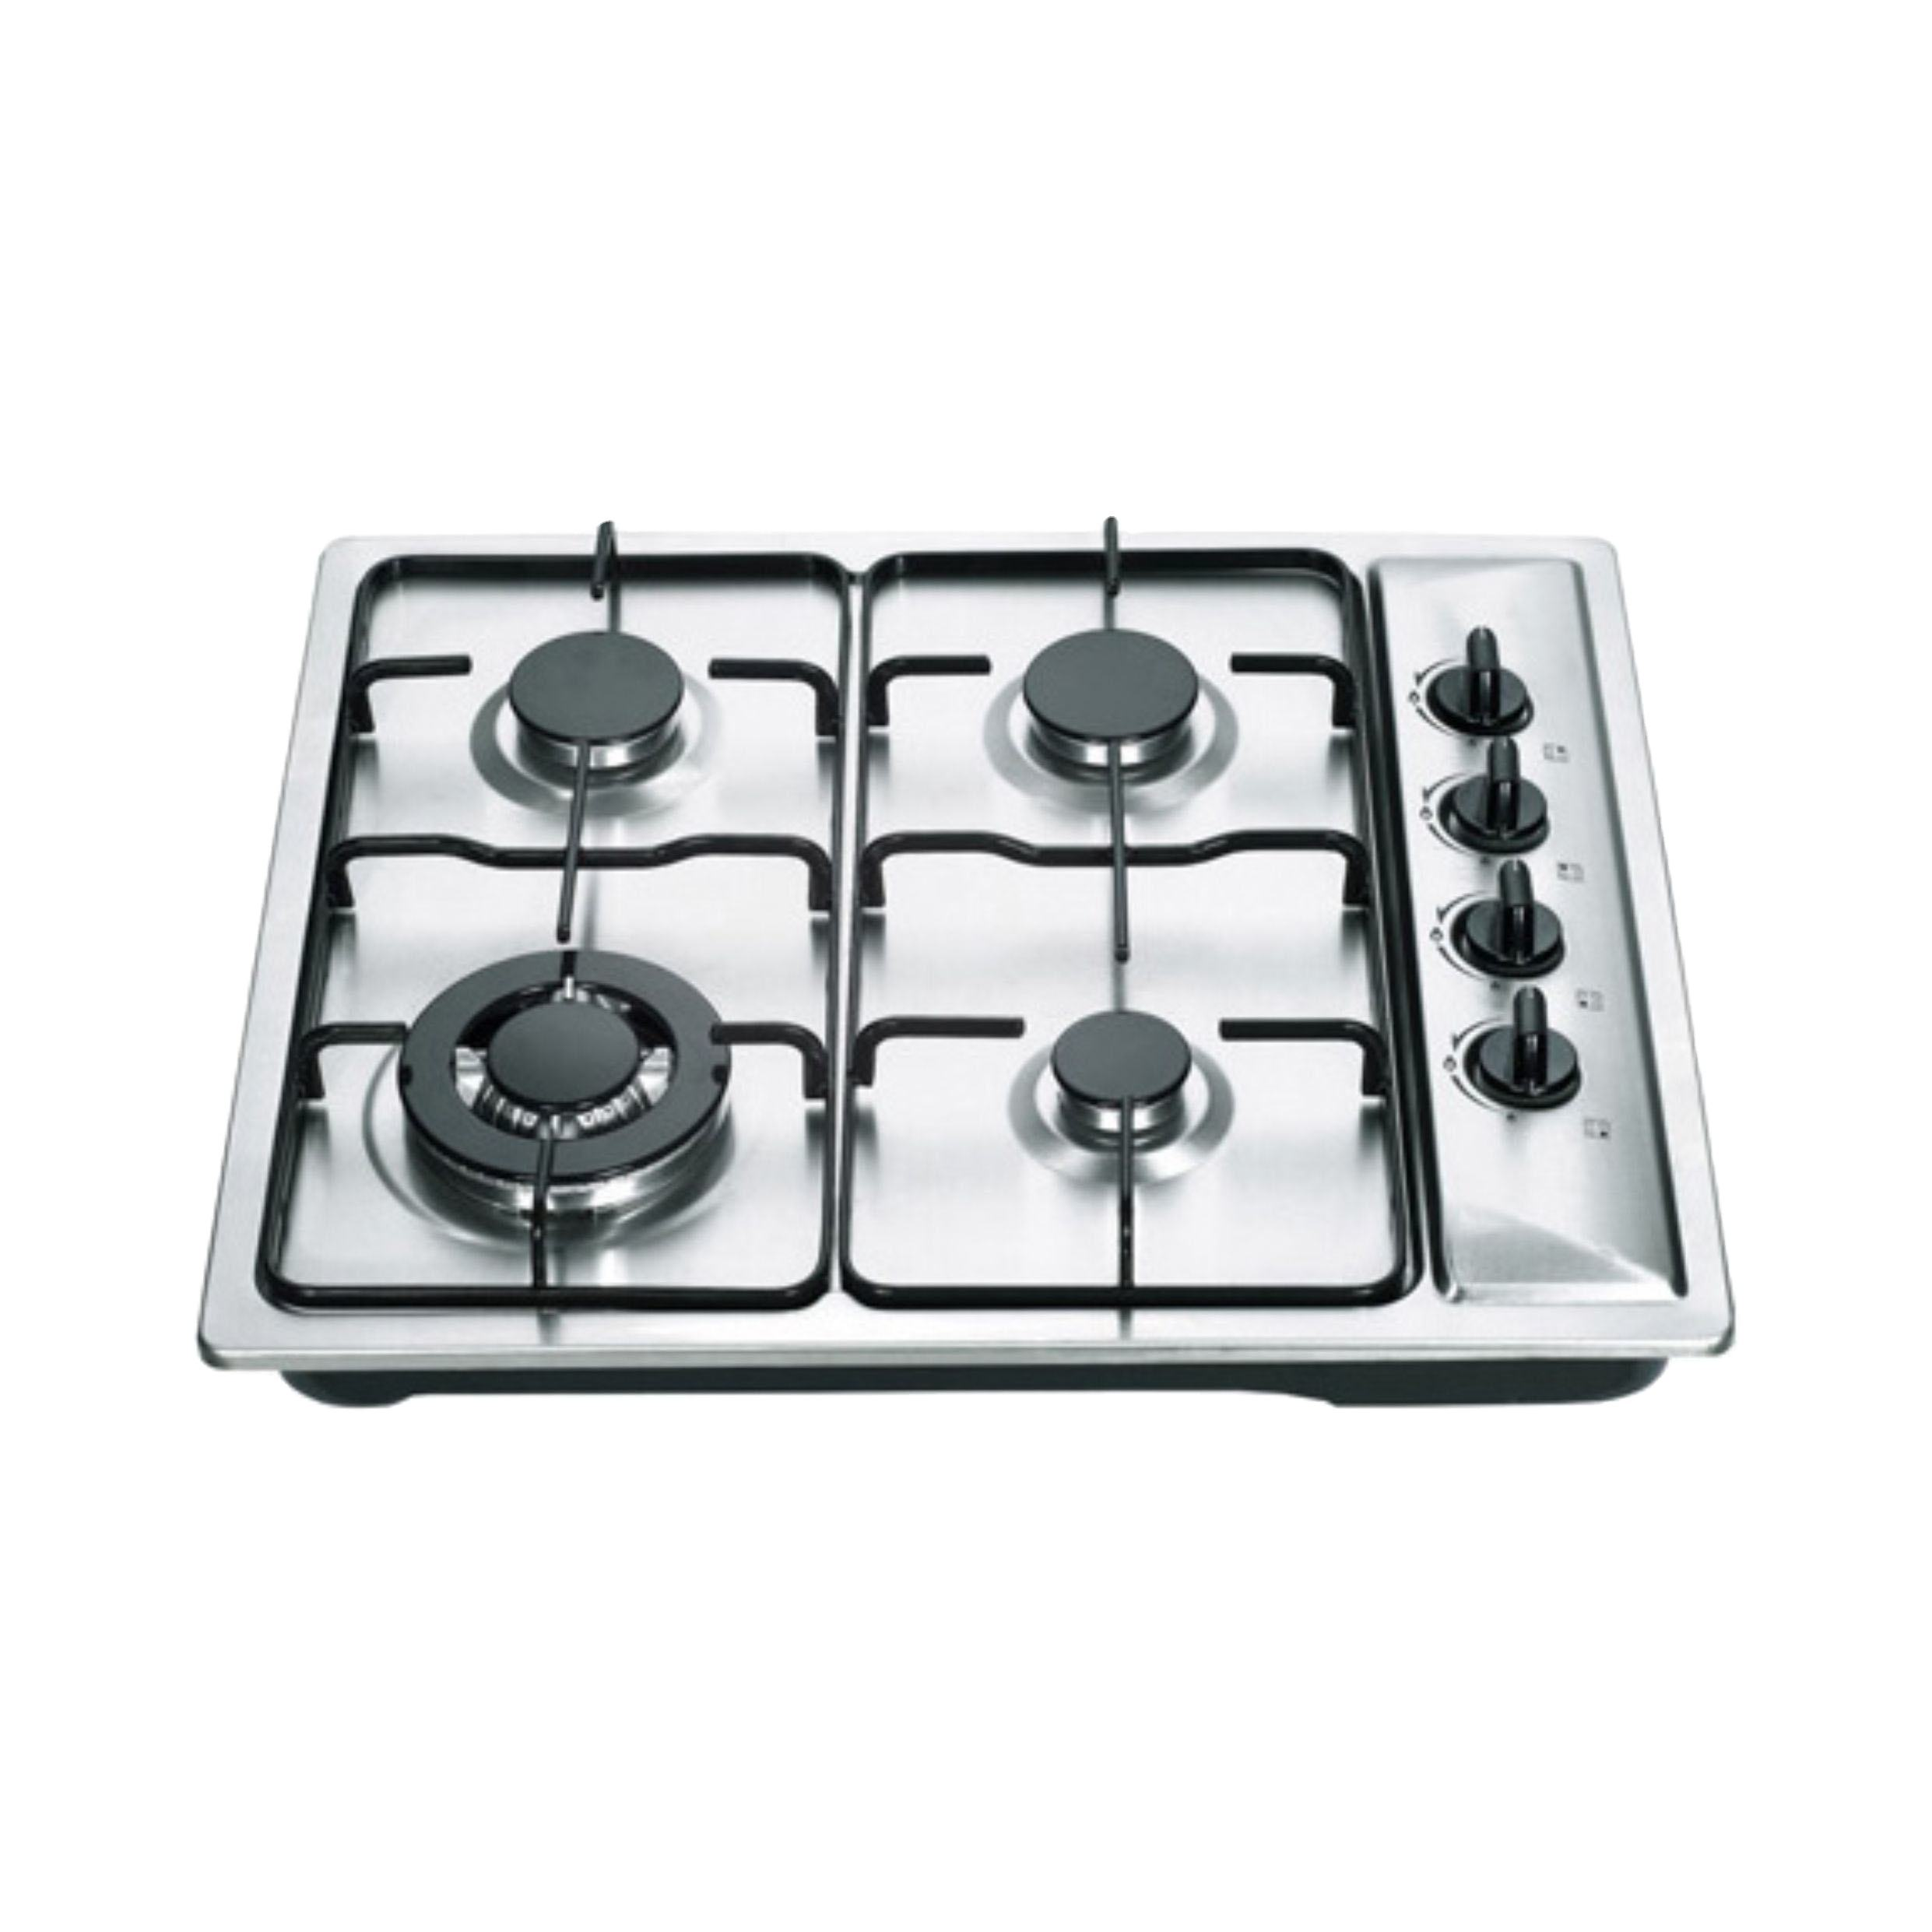 Chinese home appliance factory kitchen cooking 4 gas burner hobs with stainless steel materials